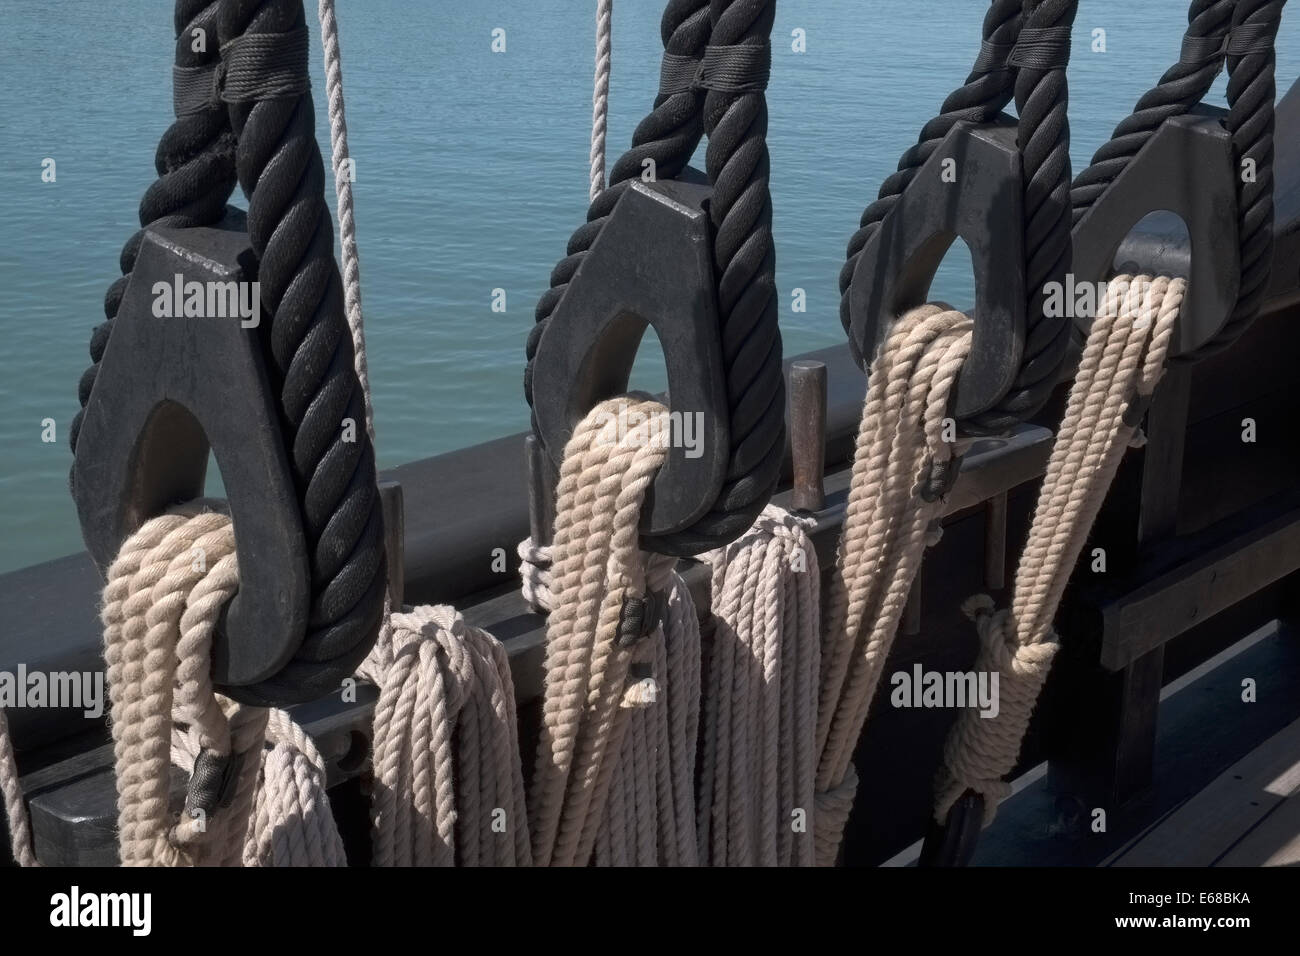 Ropes and Rigging on a Spanish caravel type vessel - Stock Image